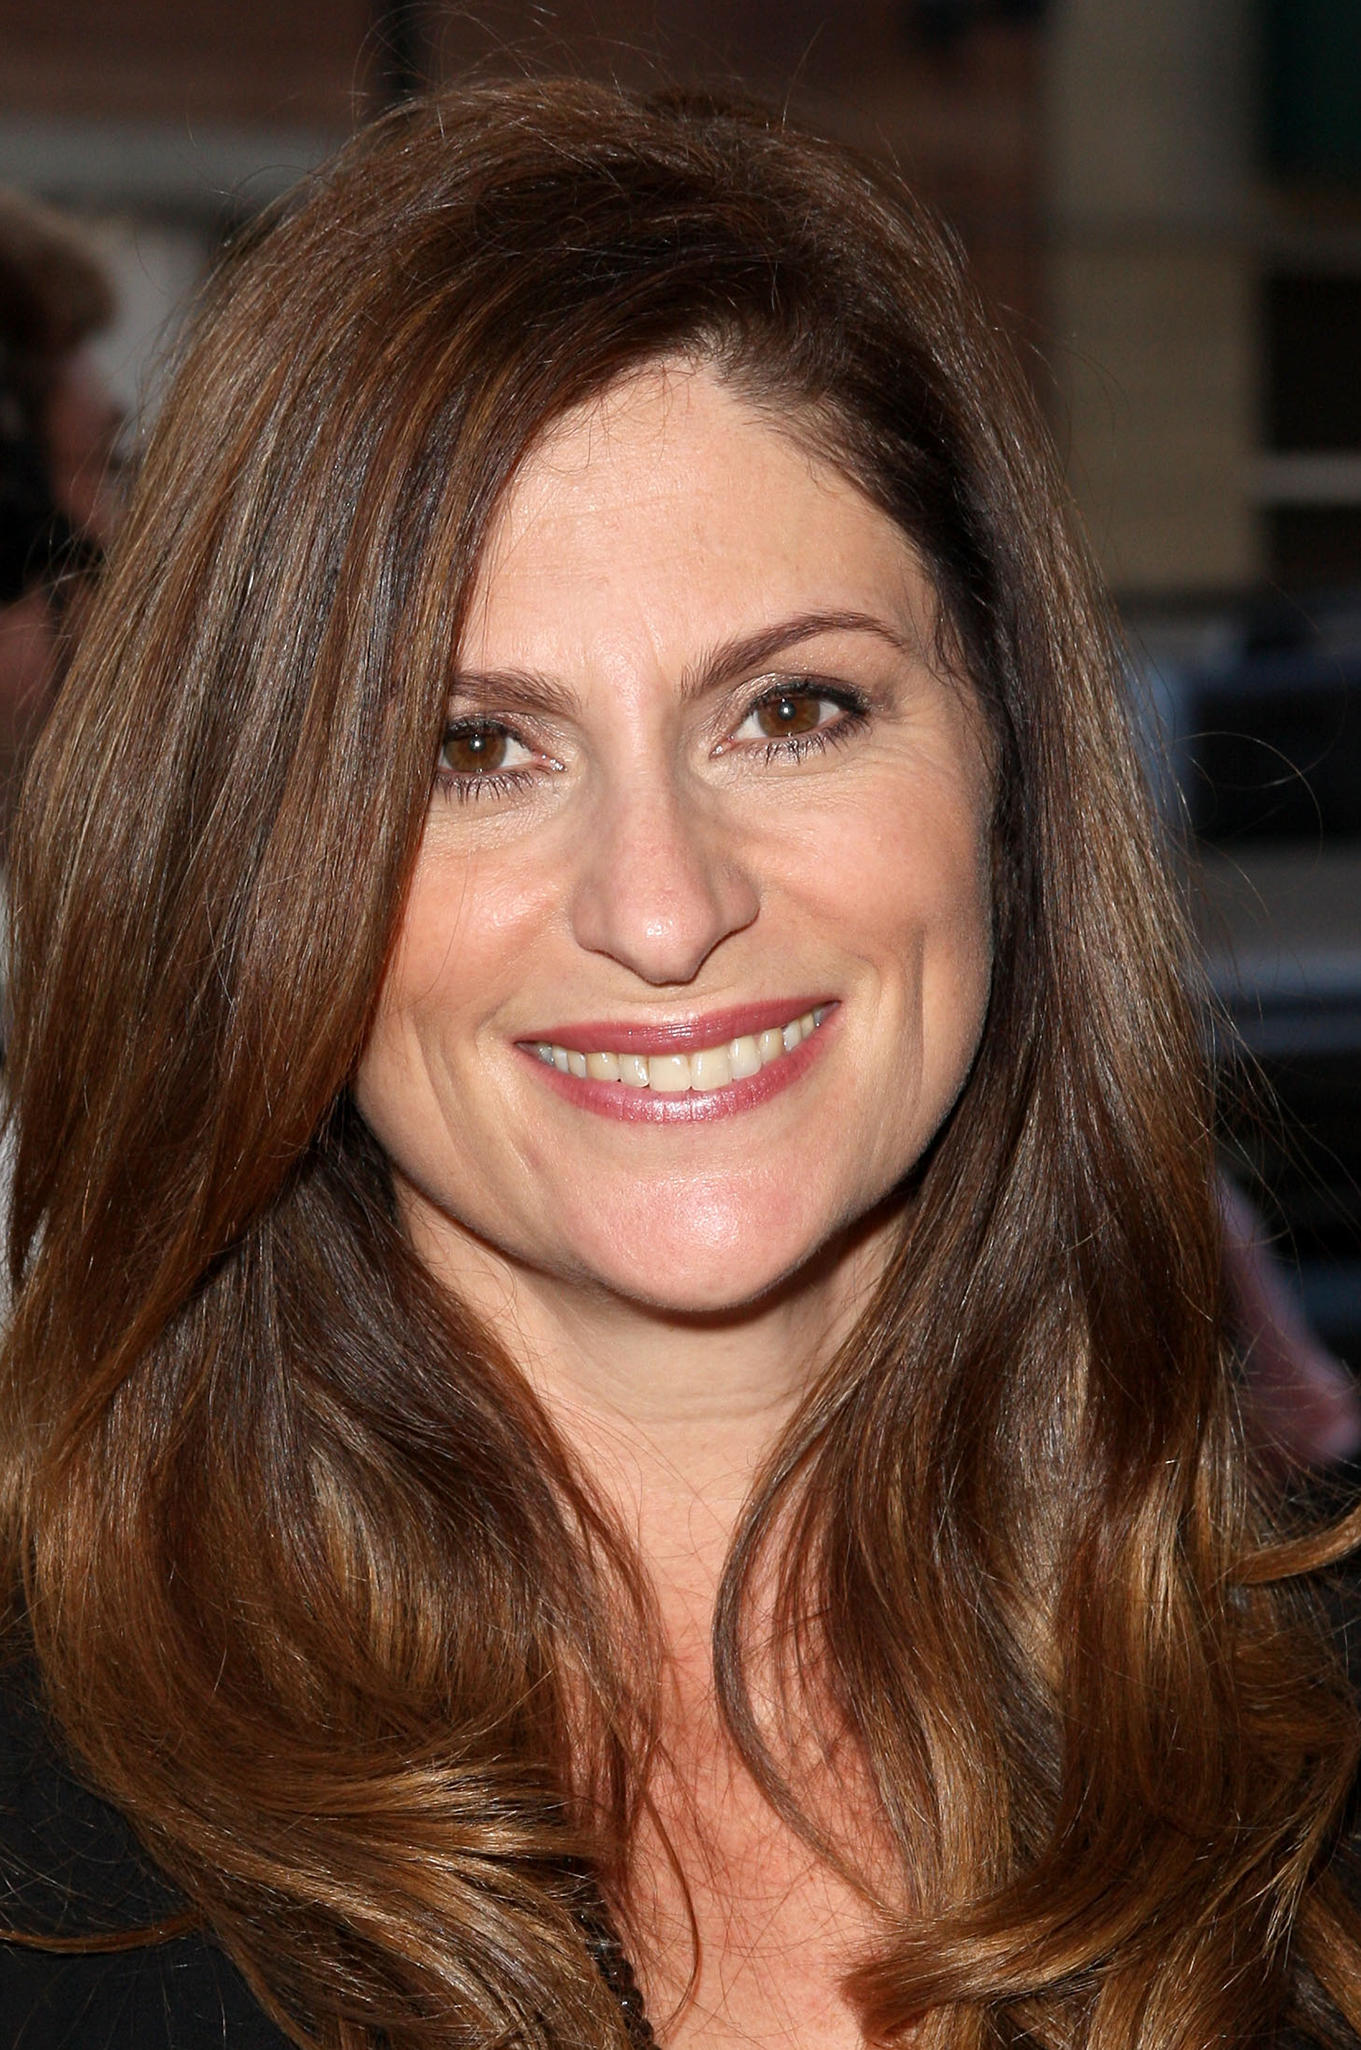 Niki Caro at the Toronto screening of